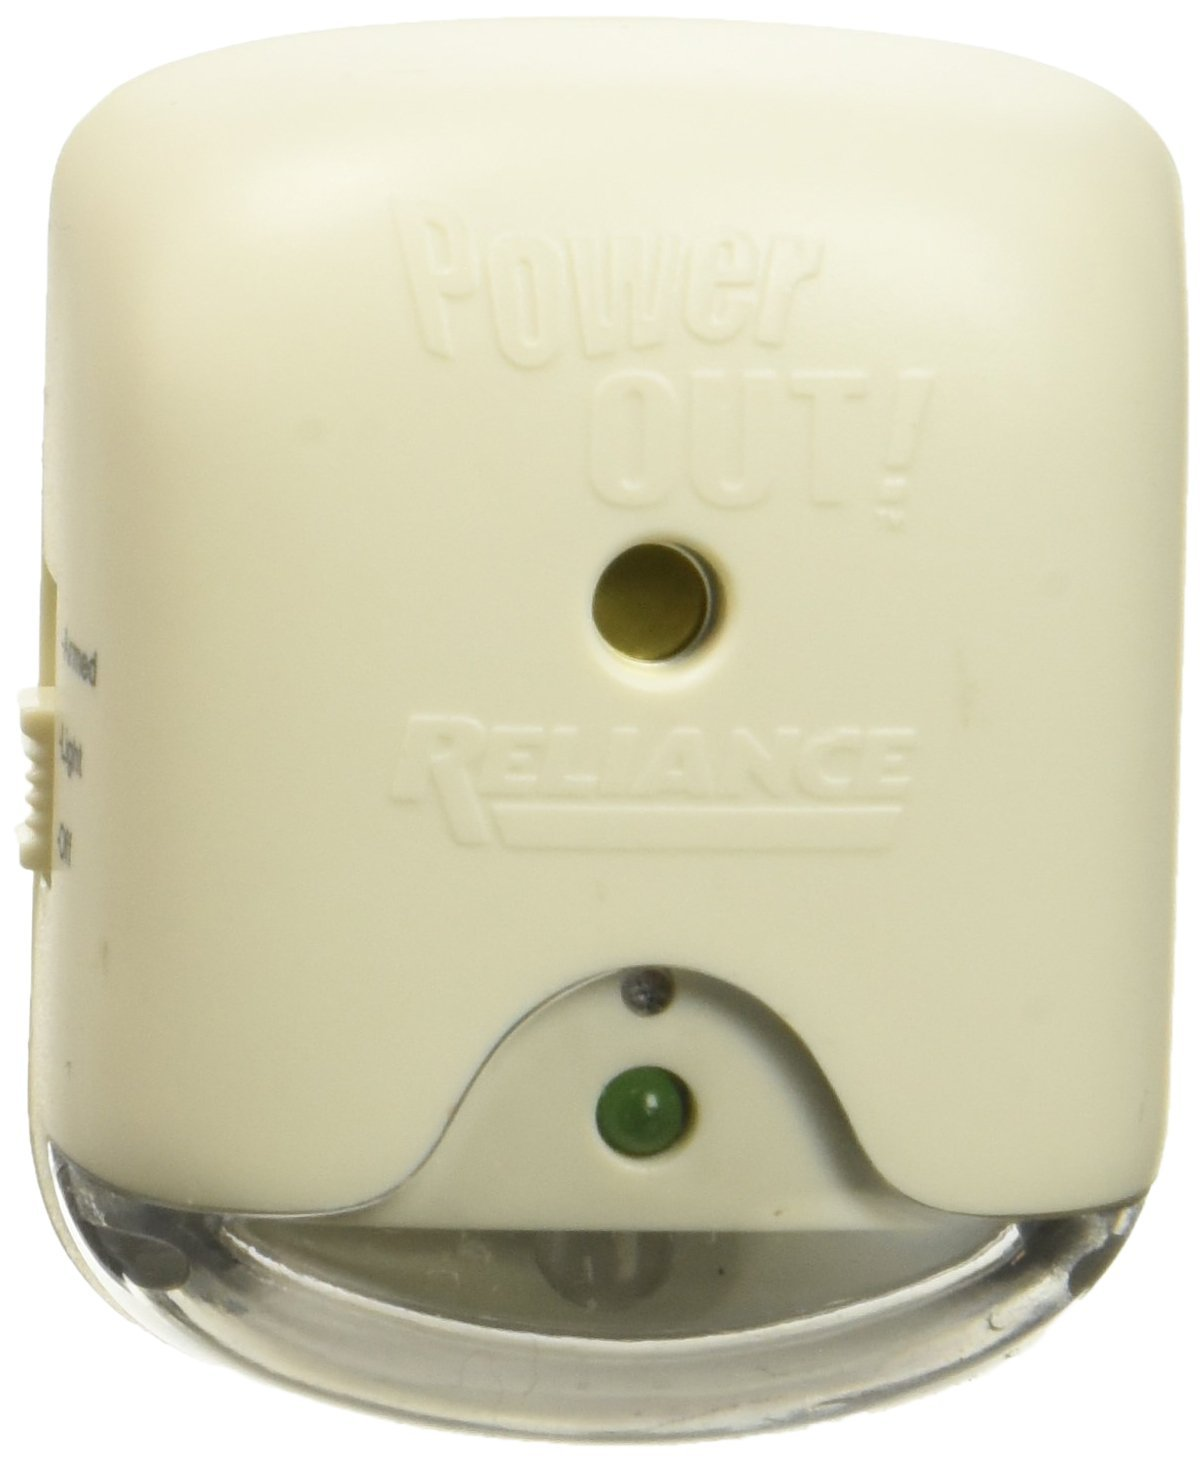 POWER FAIL LIGHT W ALARM by RELIANCE CONTROLS MfrPartNo THP207M, Reliable 120-Volt Outlet Power... by